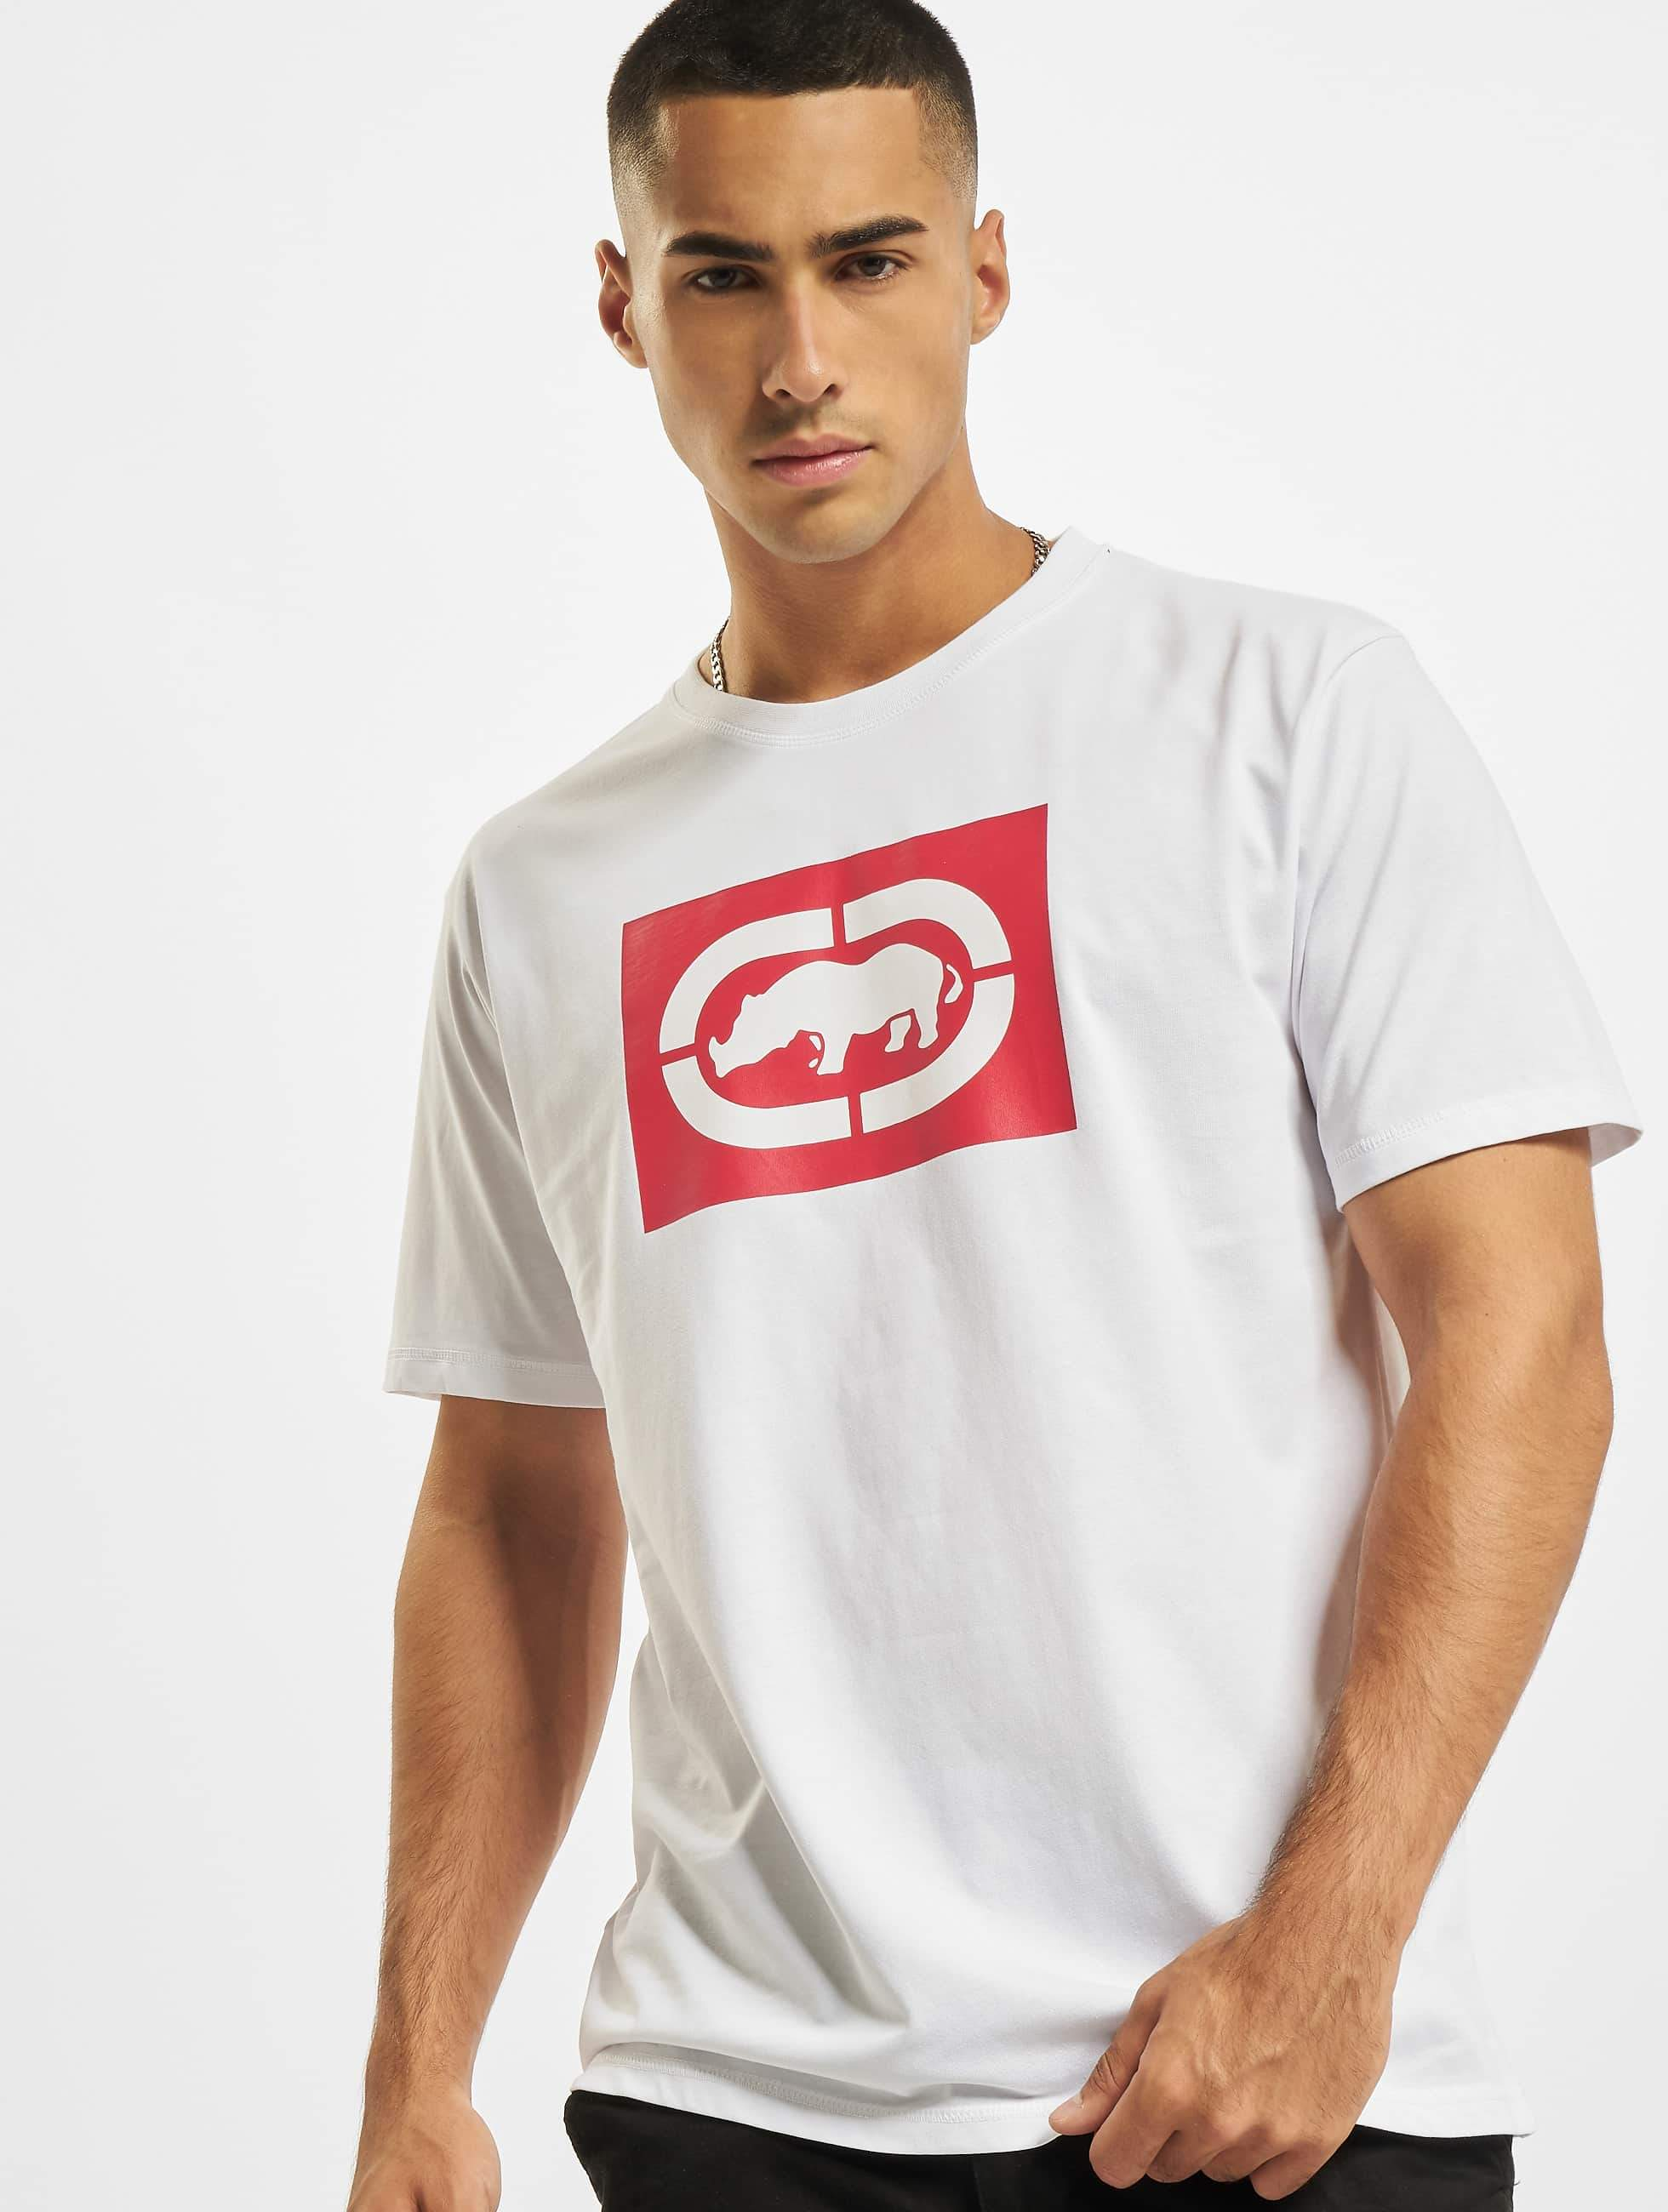 Ecko Unltd. / T-Shirt Base in white XL